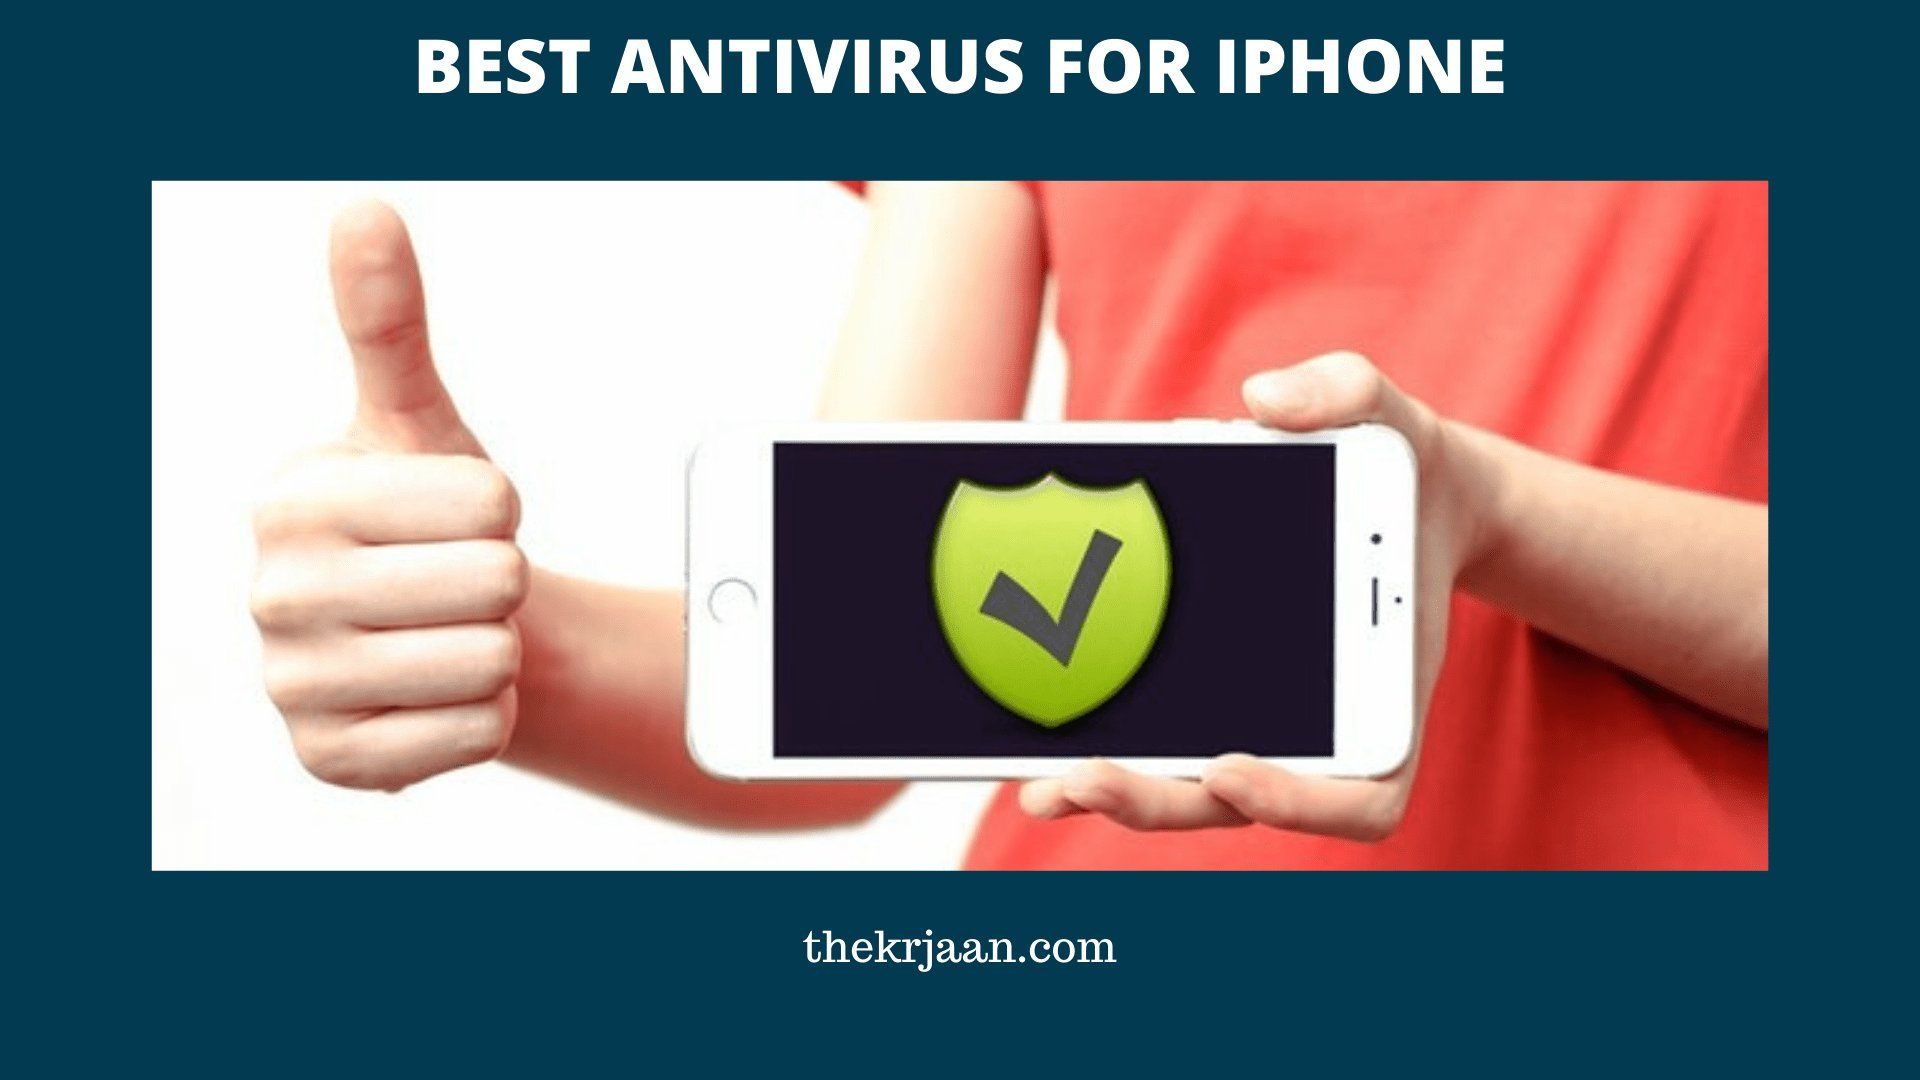 Best antivirus for iphone for free iphone protection